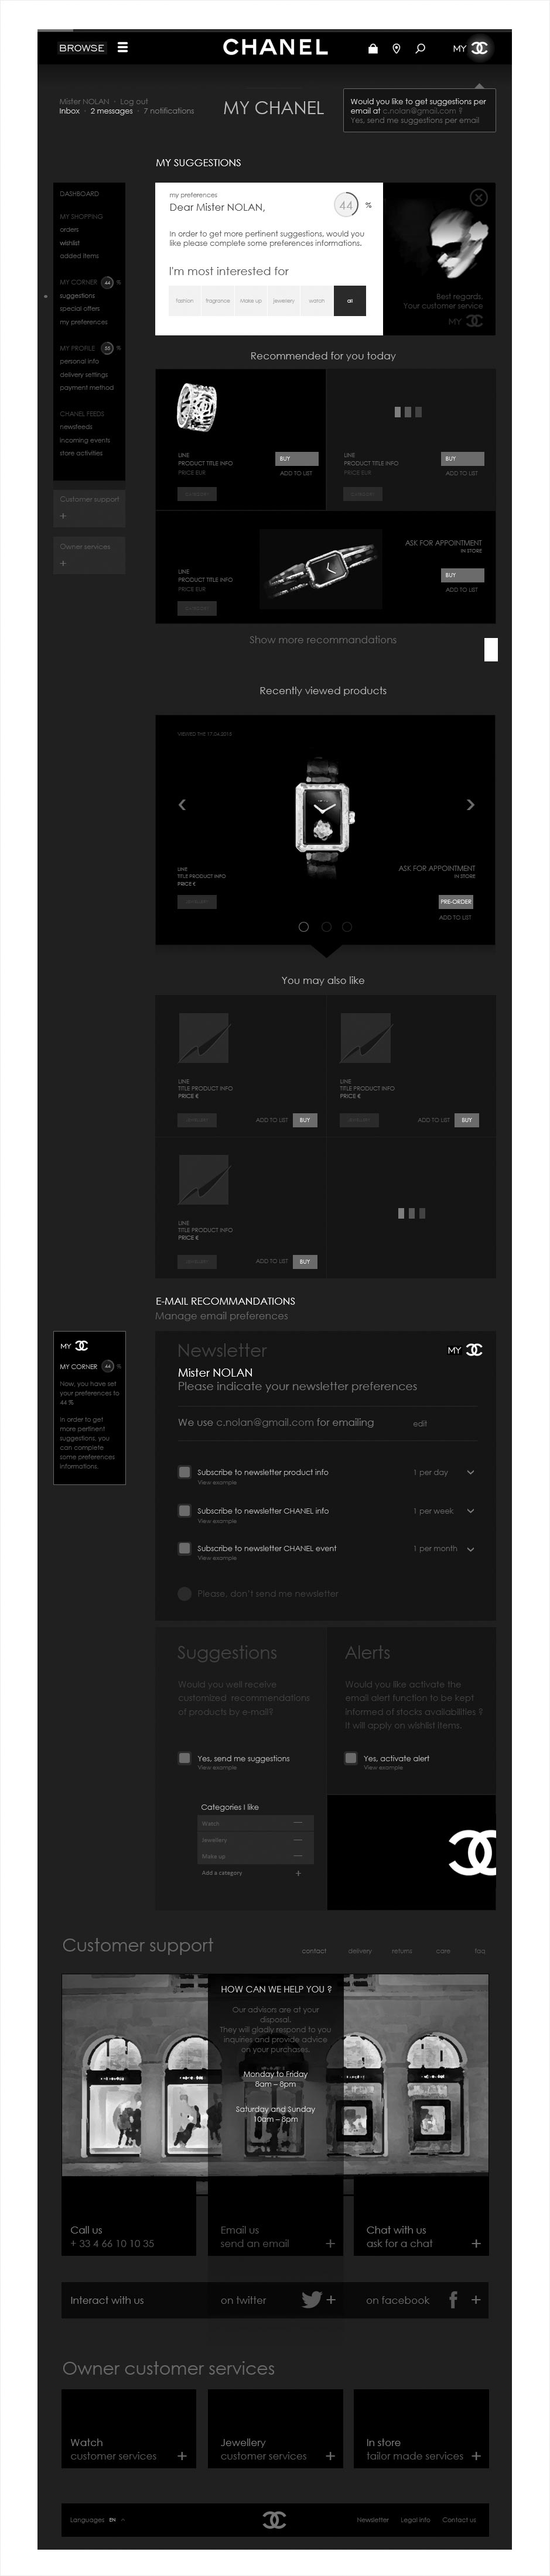 accueil, wireframe espace client CHANEL